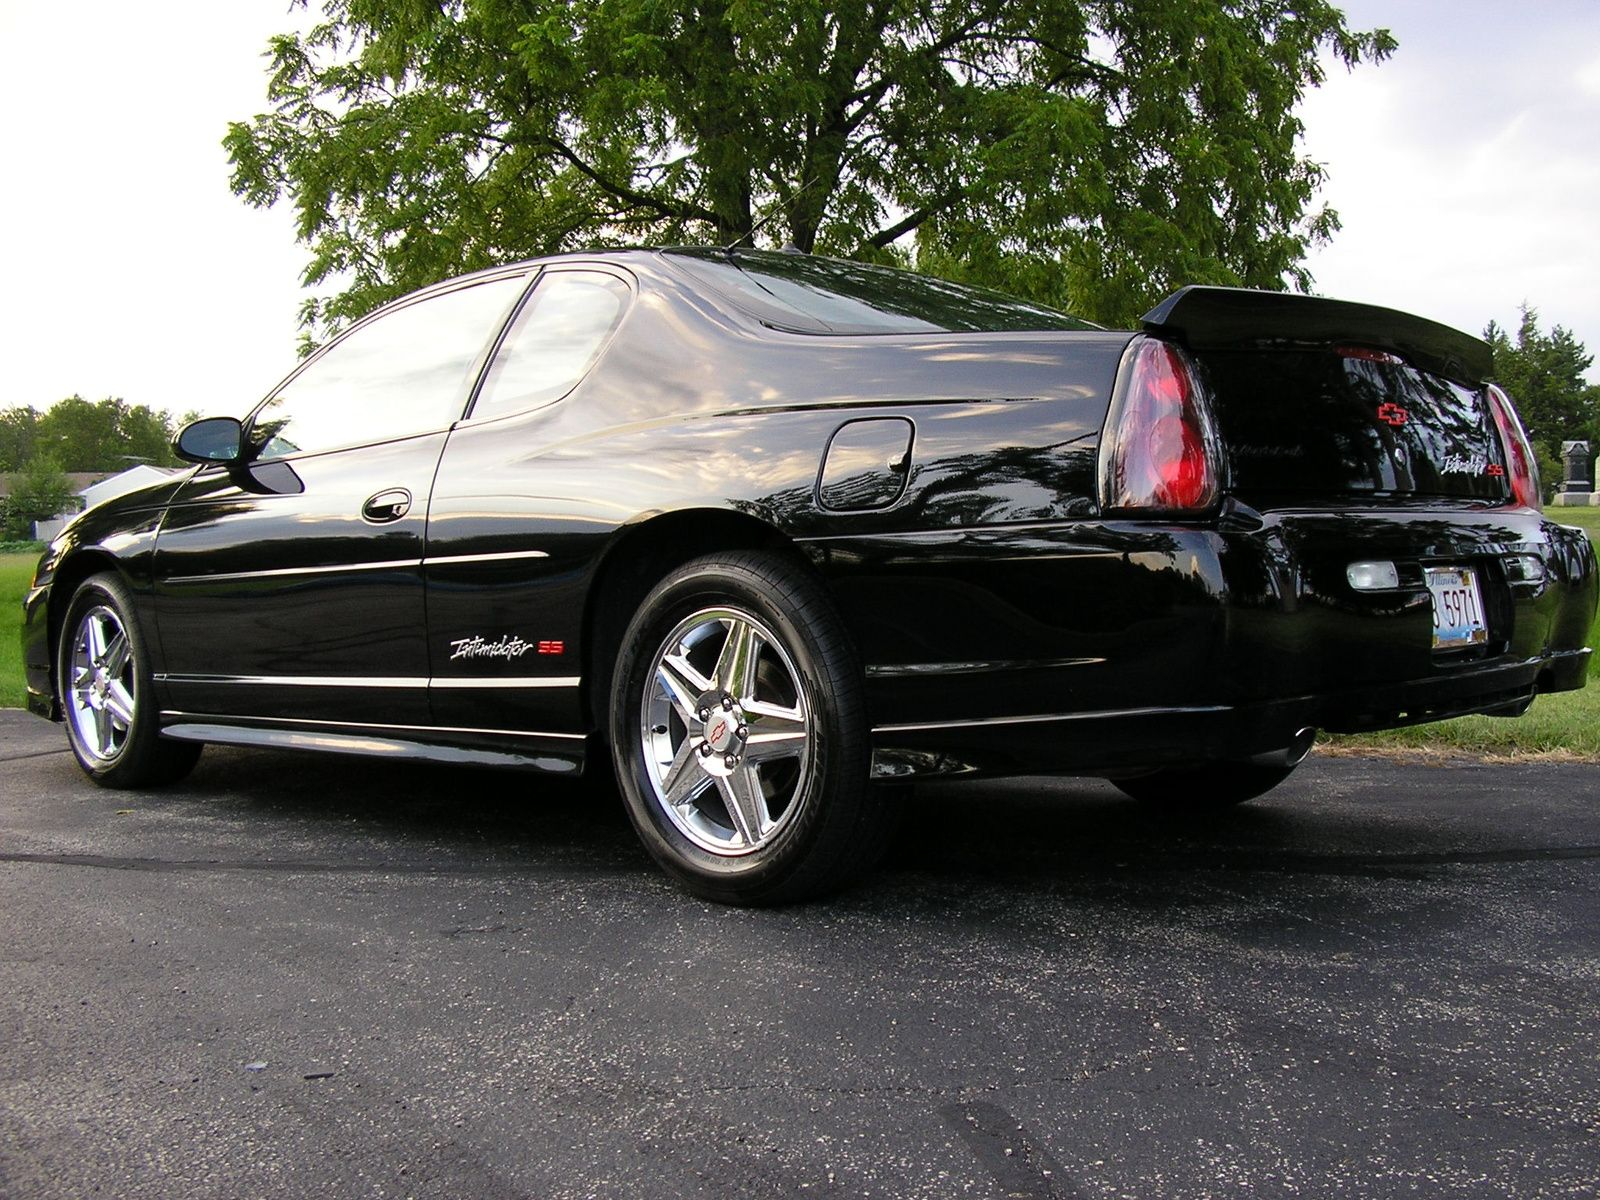 Photo of 2002 monte carlo ss dale earnhardt edition why do i love this car so much way cool pinterest dale earnhardt monte carlo and cars